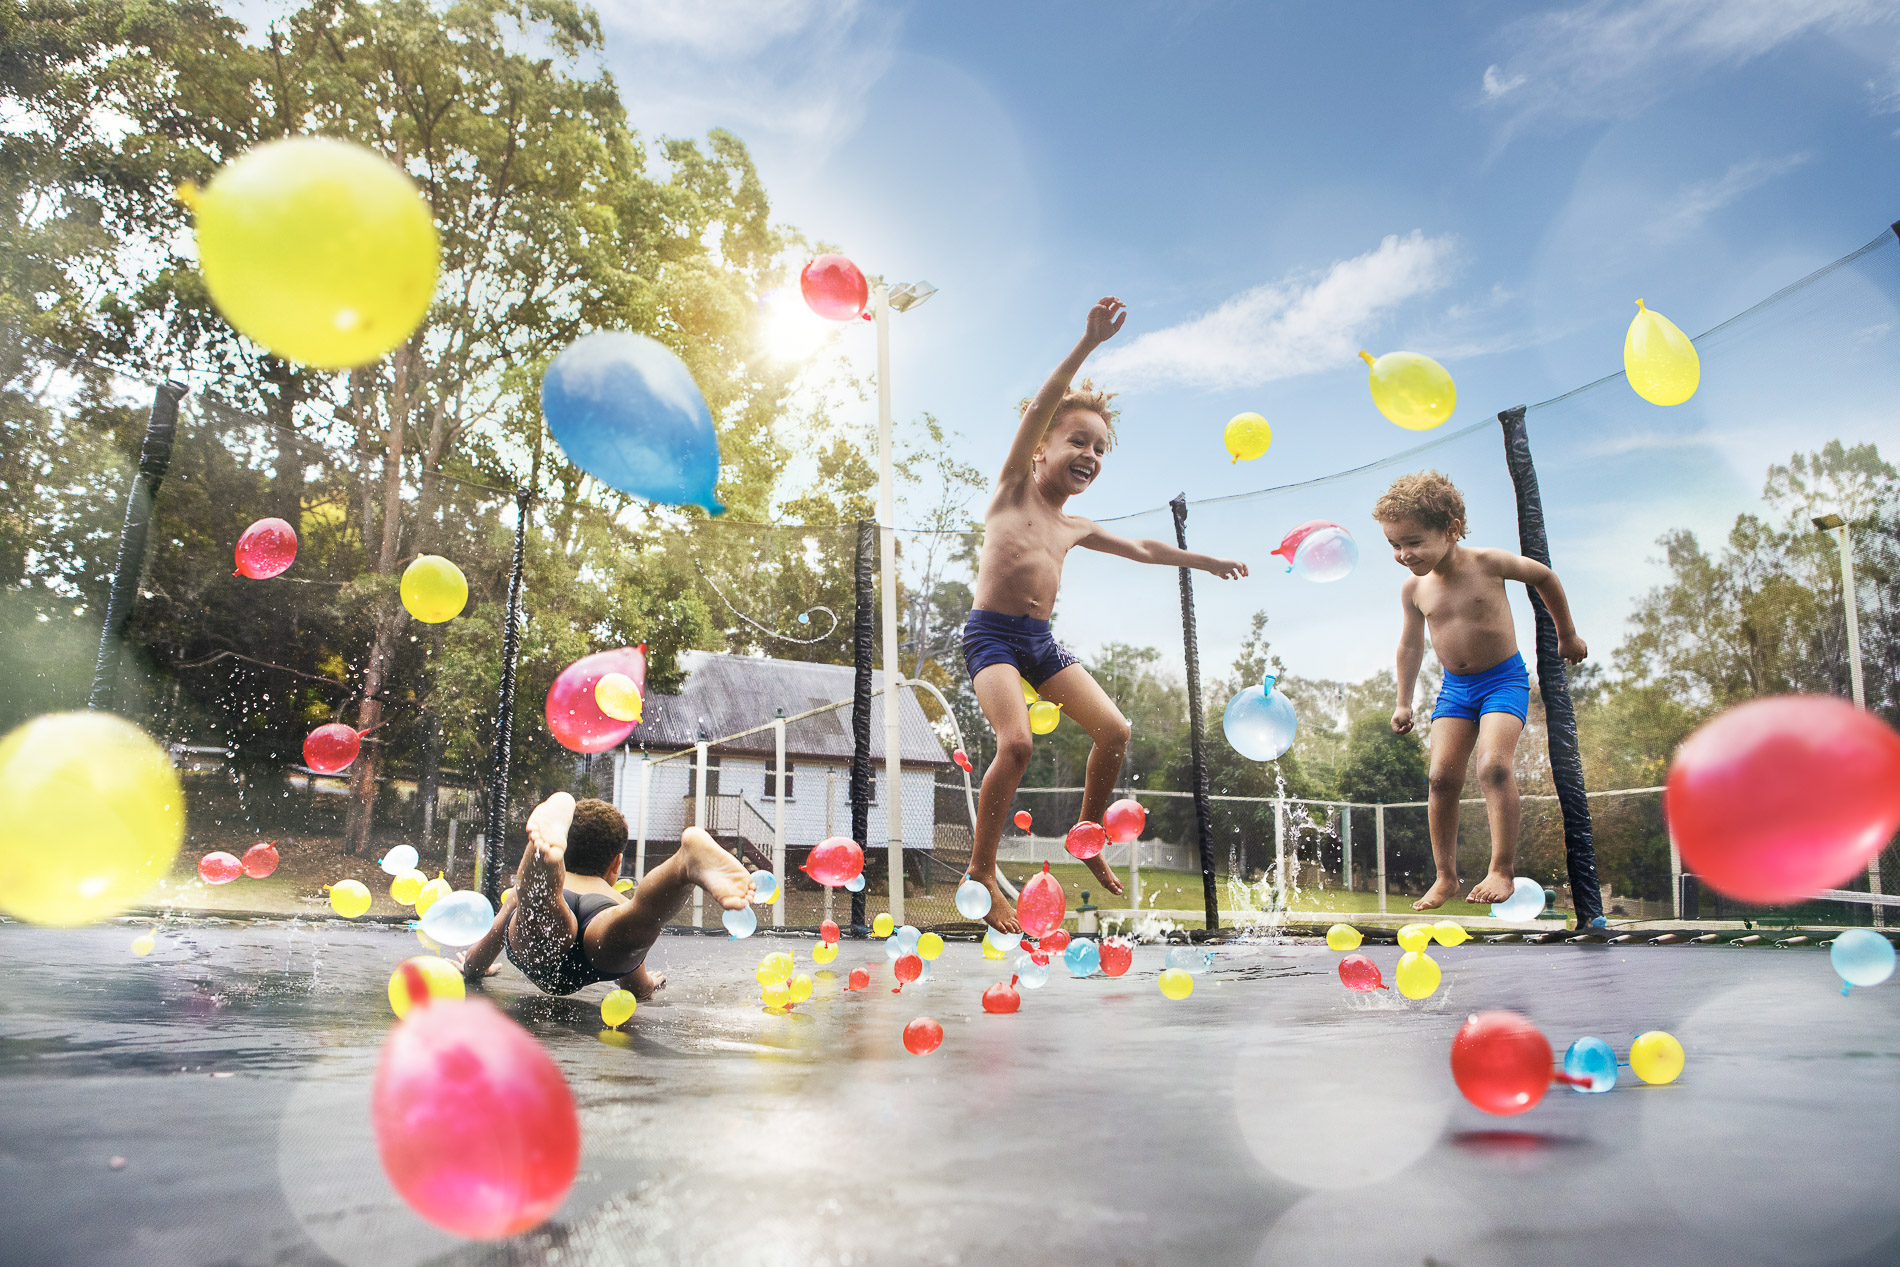 three young boys jumping on a trampoline with water balloons. Photography by Jack Harlem